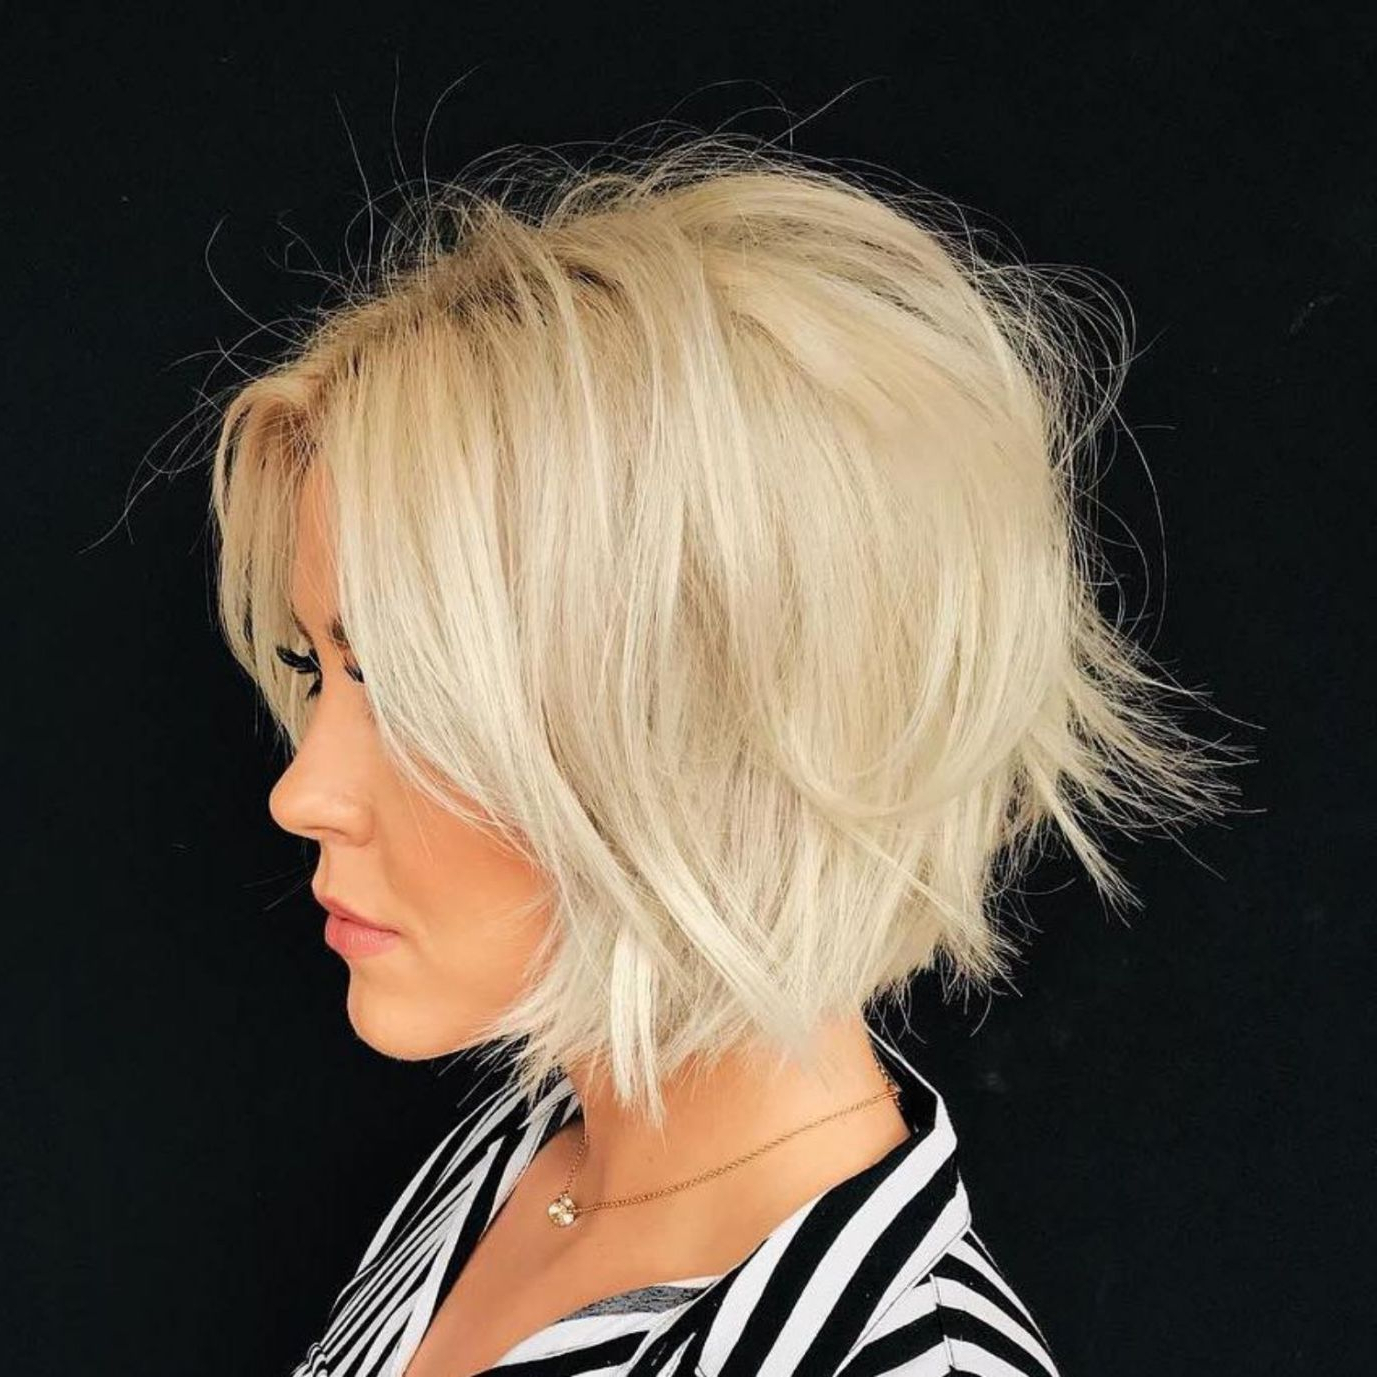 60 Layered Bob Styles: Modern Haircuts With Layers For Any Throughout Modern And Stylish Blonde Bob Haircuts (View 13 of 20)